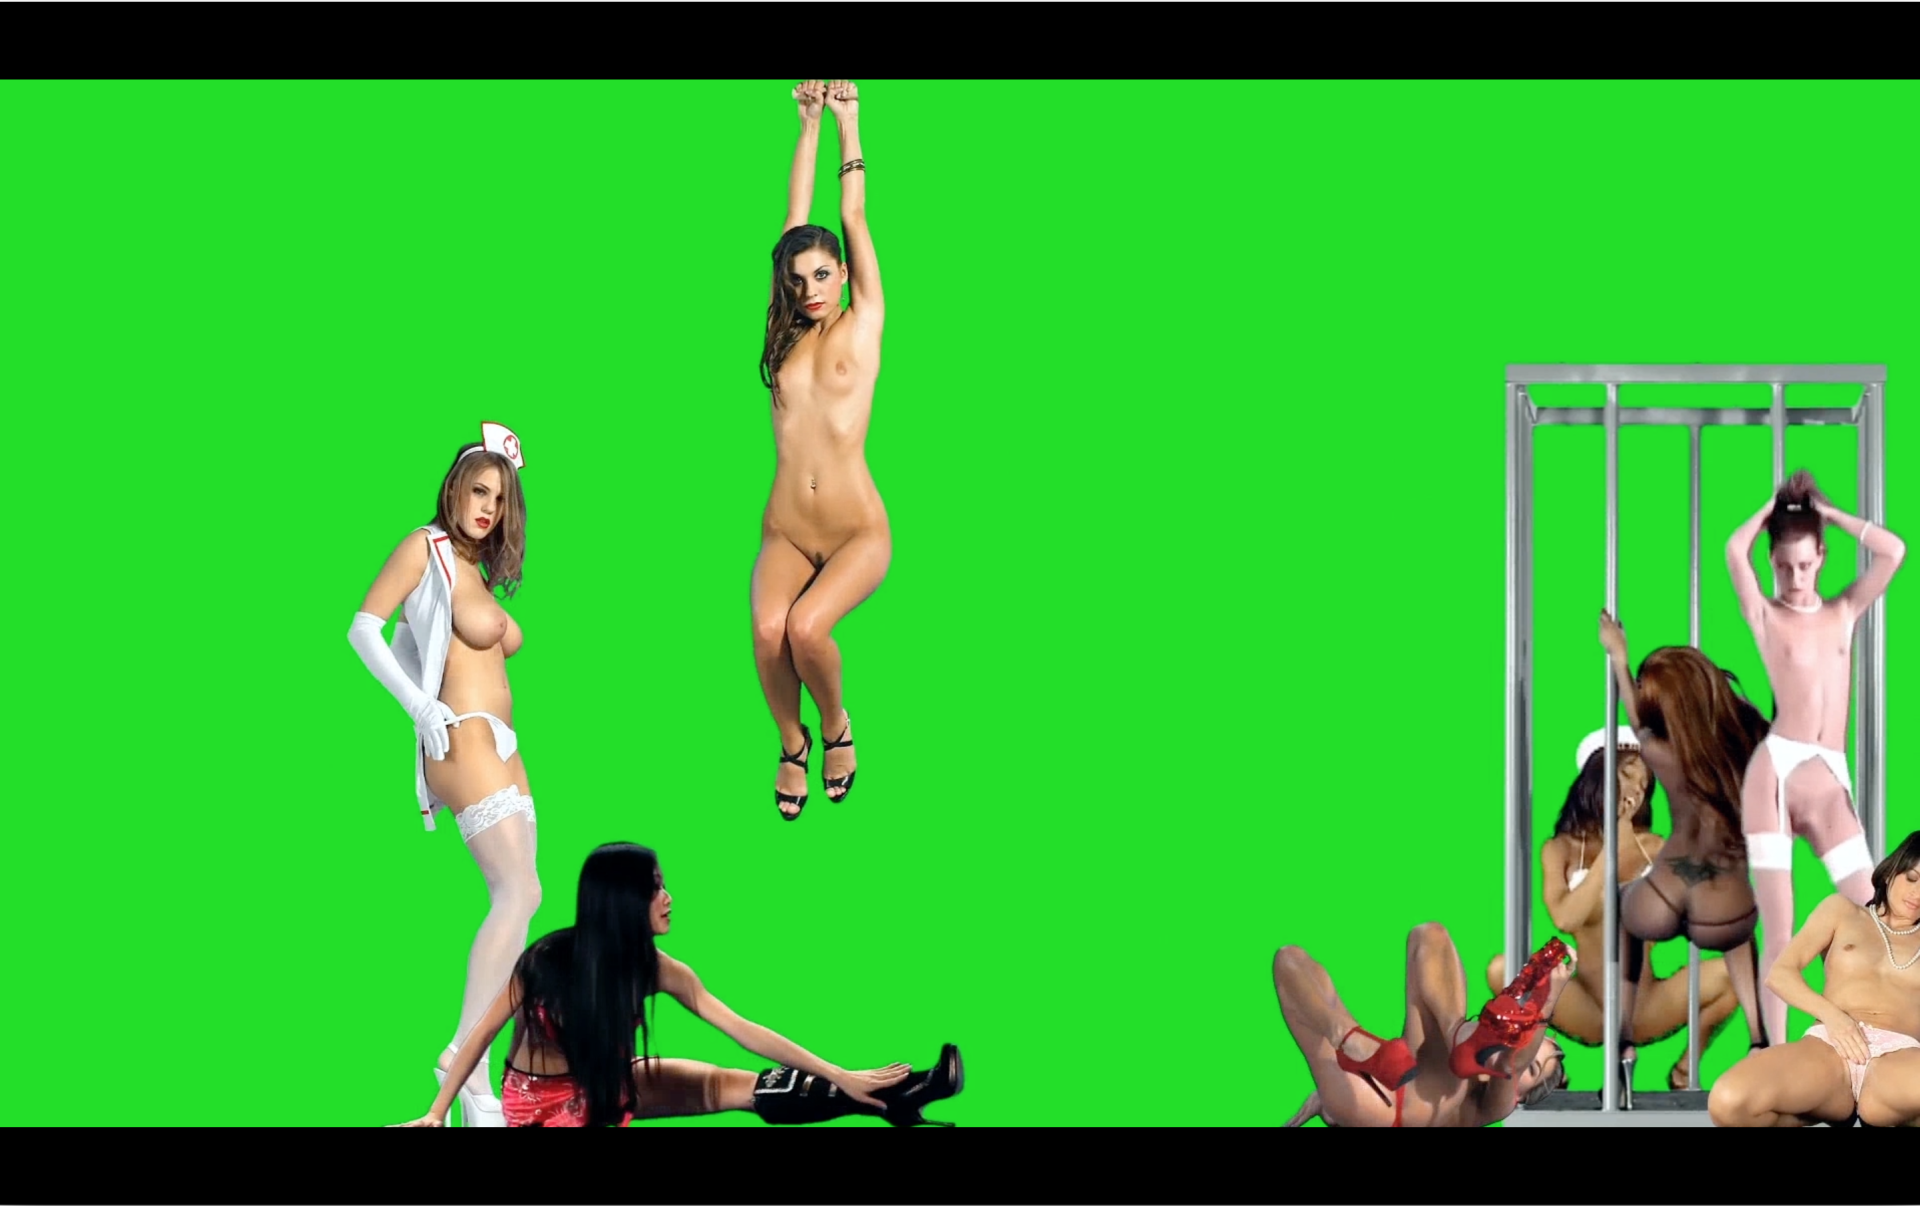 Petra Cortright_basic_compiler_music_thartgorgeous interview